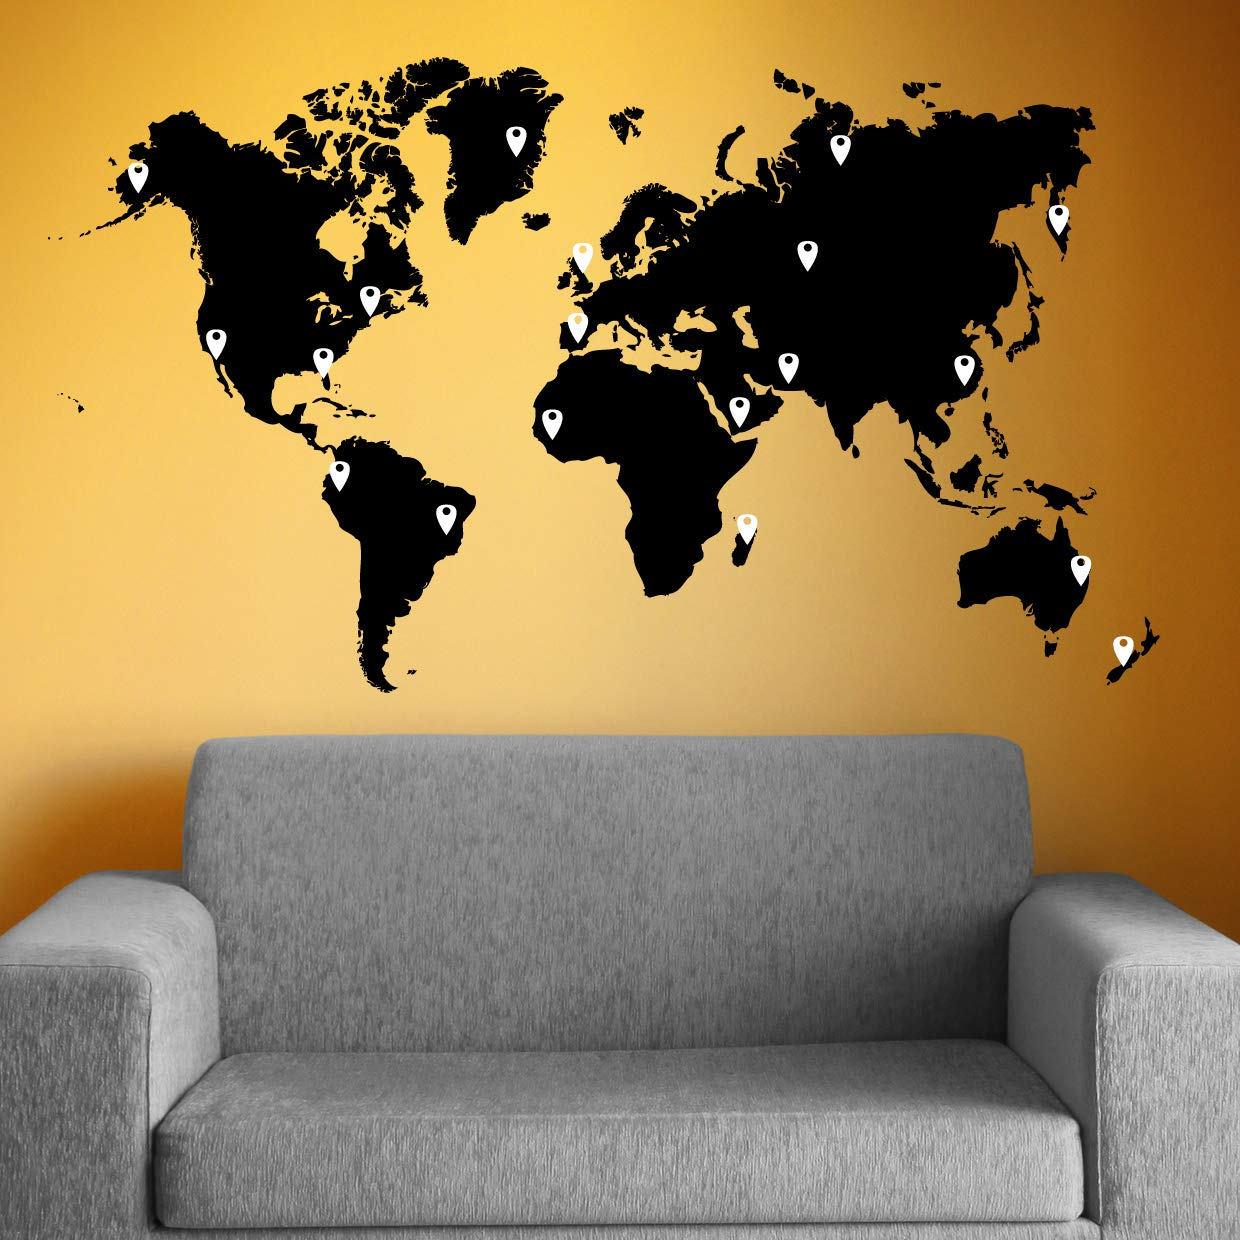 Amazon.com: Stickerbrand World Map Wall Decal Sticker w/ 224 Pins ...